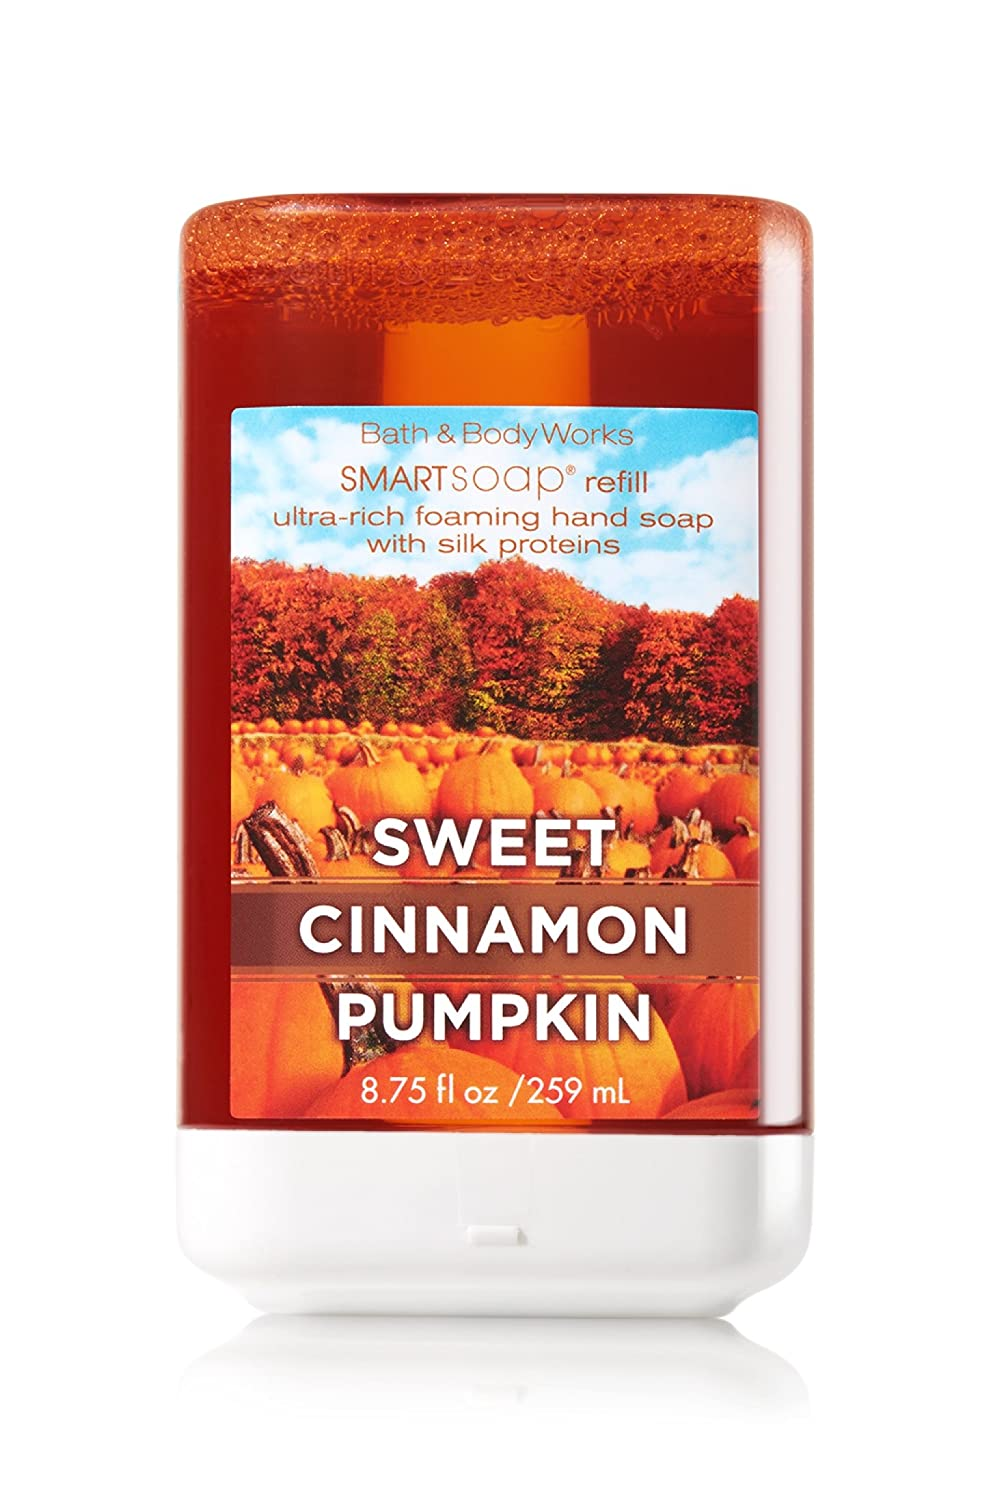 Bath & Body Works Sweet Cinnamon Pumpkin SmartSoap Ultra-Rich Foaming Hand Soap Refill